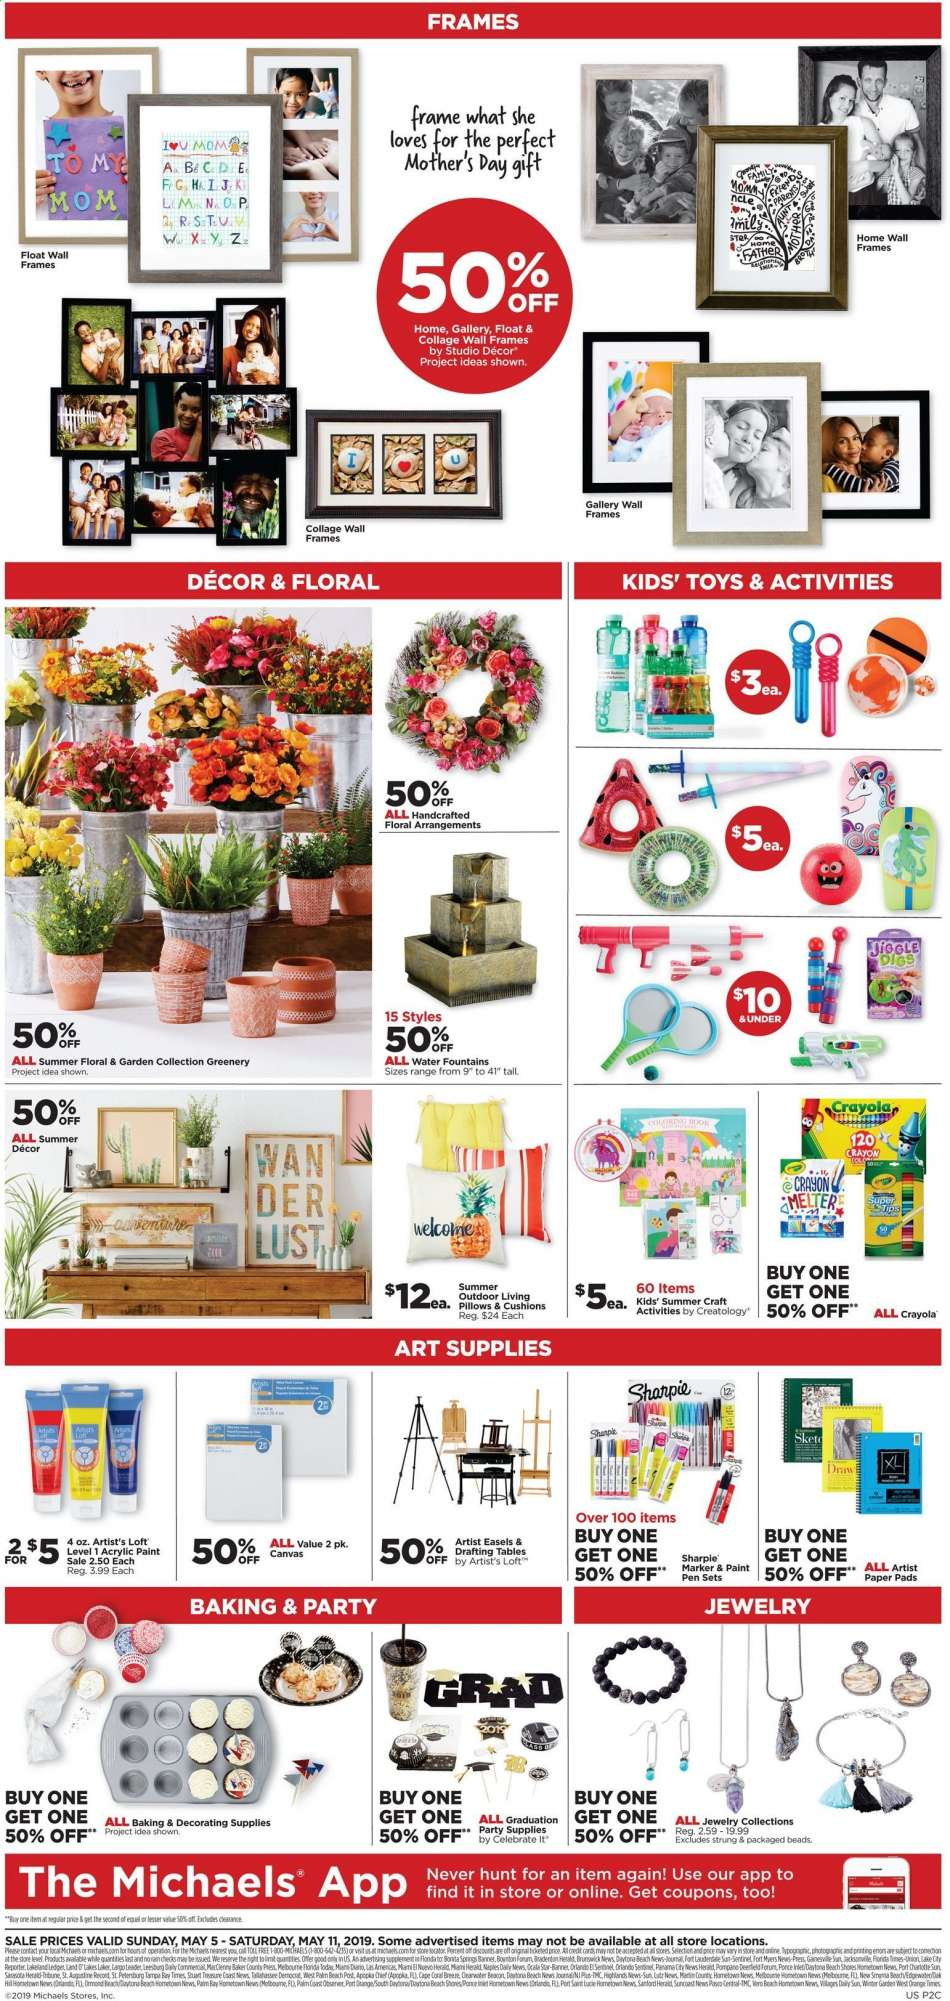 Weekly Ads.us